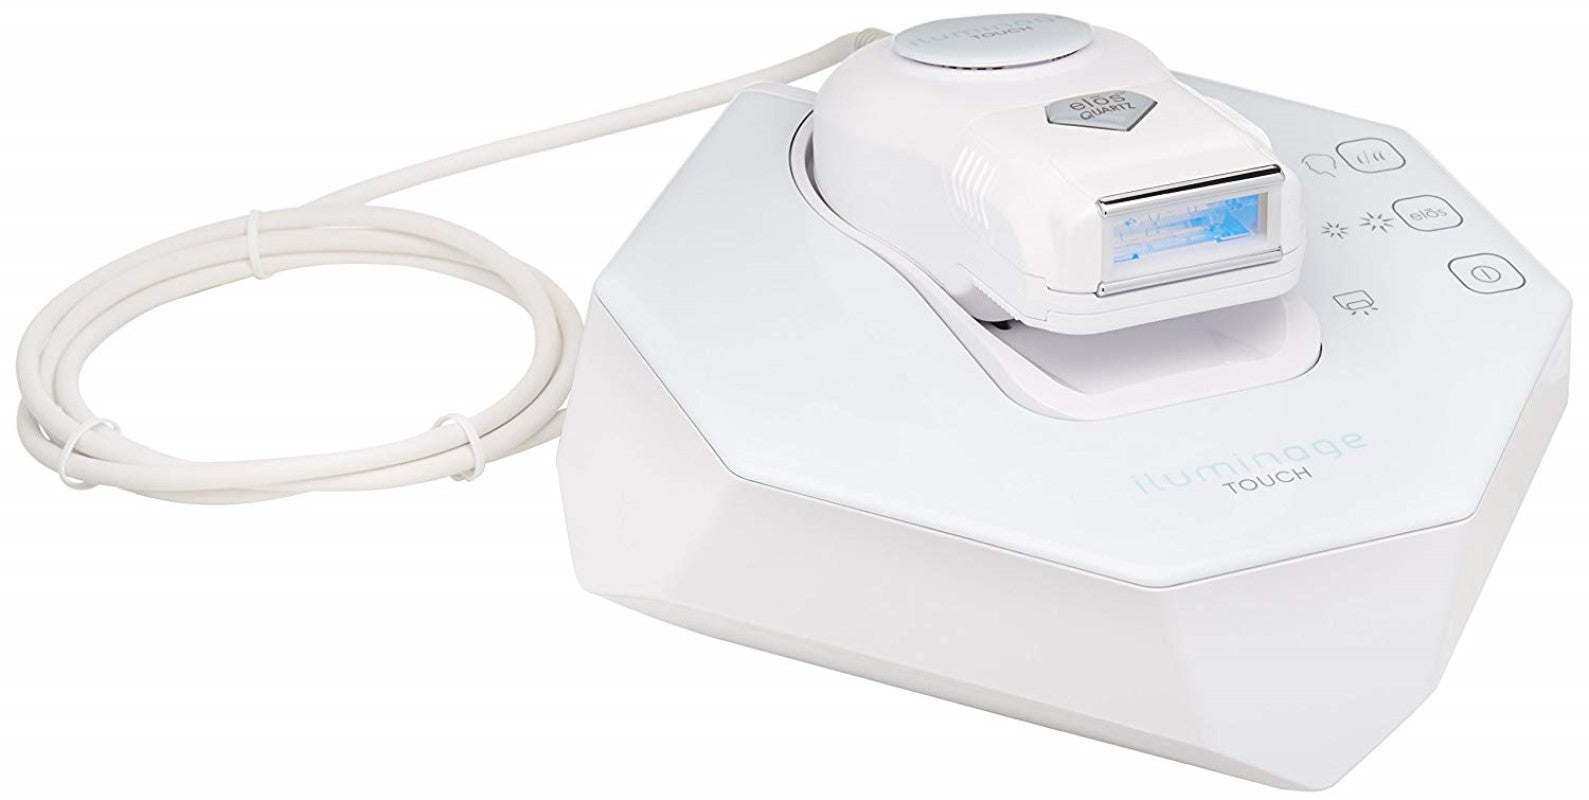 Iluminage Touch At Home Permanent Hair Removal IPL & Radio Frequency System (FDA-Cleared) - All Skin Tones